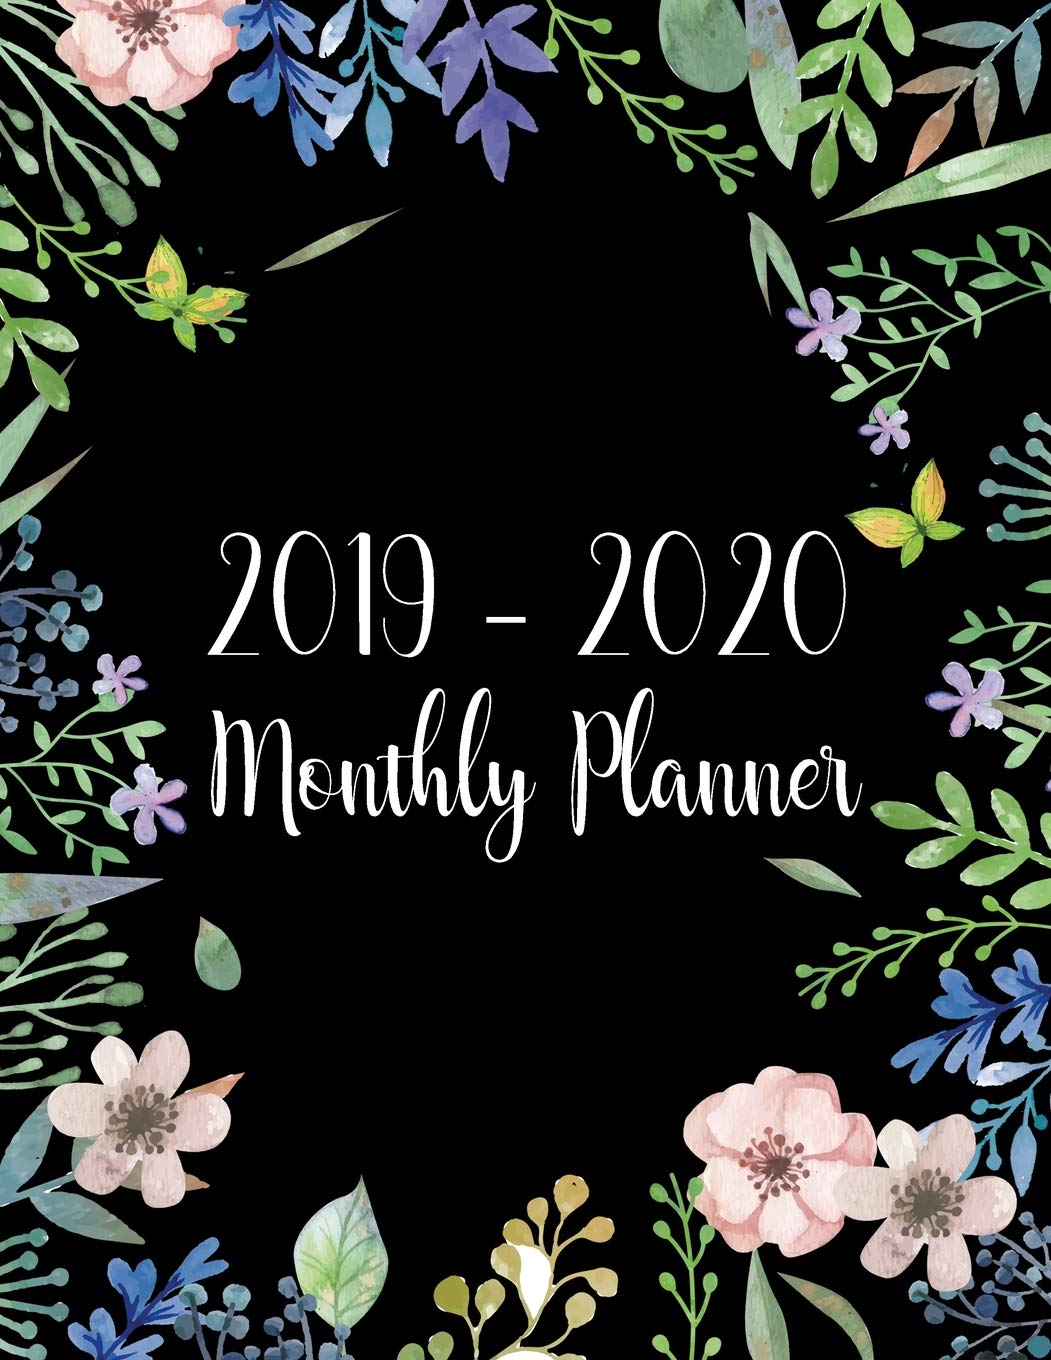 2020 December Monday Thru Friday Calendar 2019 2020 Monthly Planner: Two Year   Monthly Calendar Planner